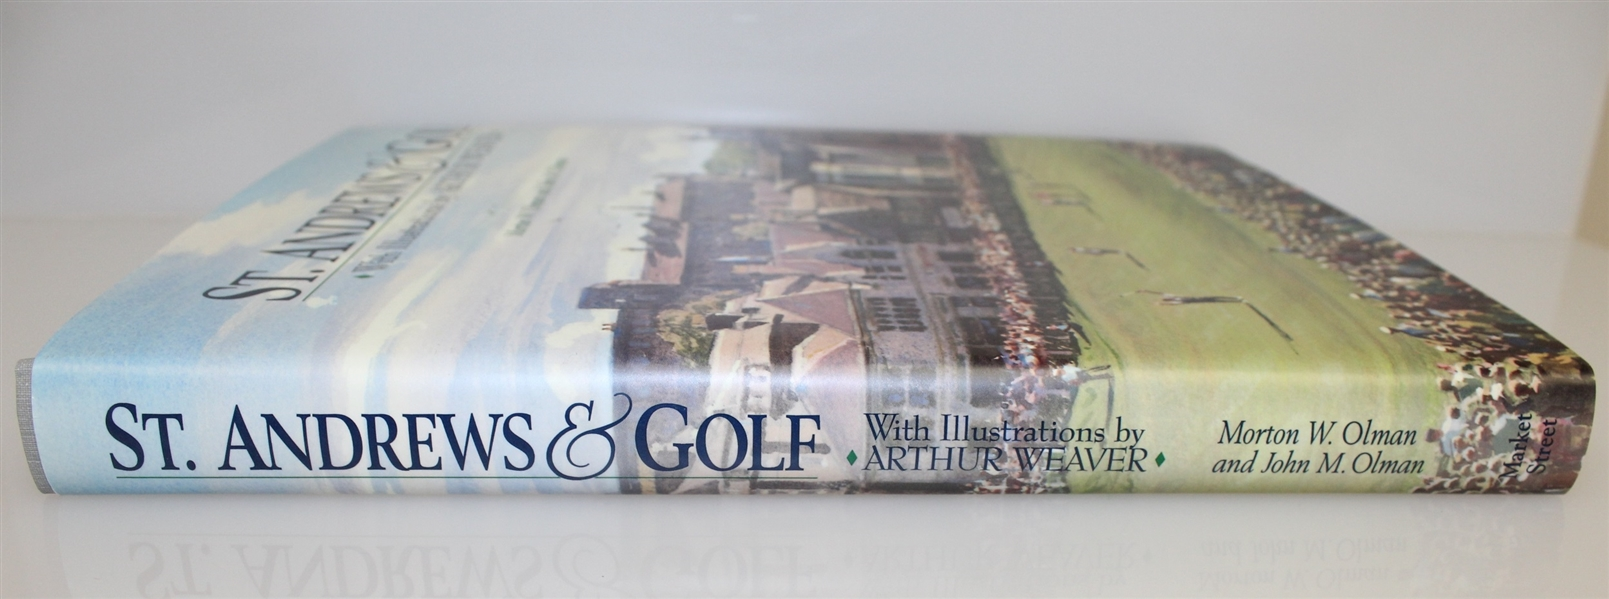 'St. Andrews & Golf' First Edition by Olman and Olman with Arthur Weaver Illustrations